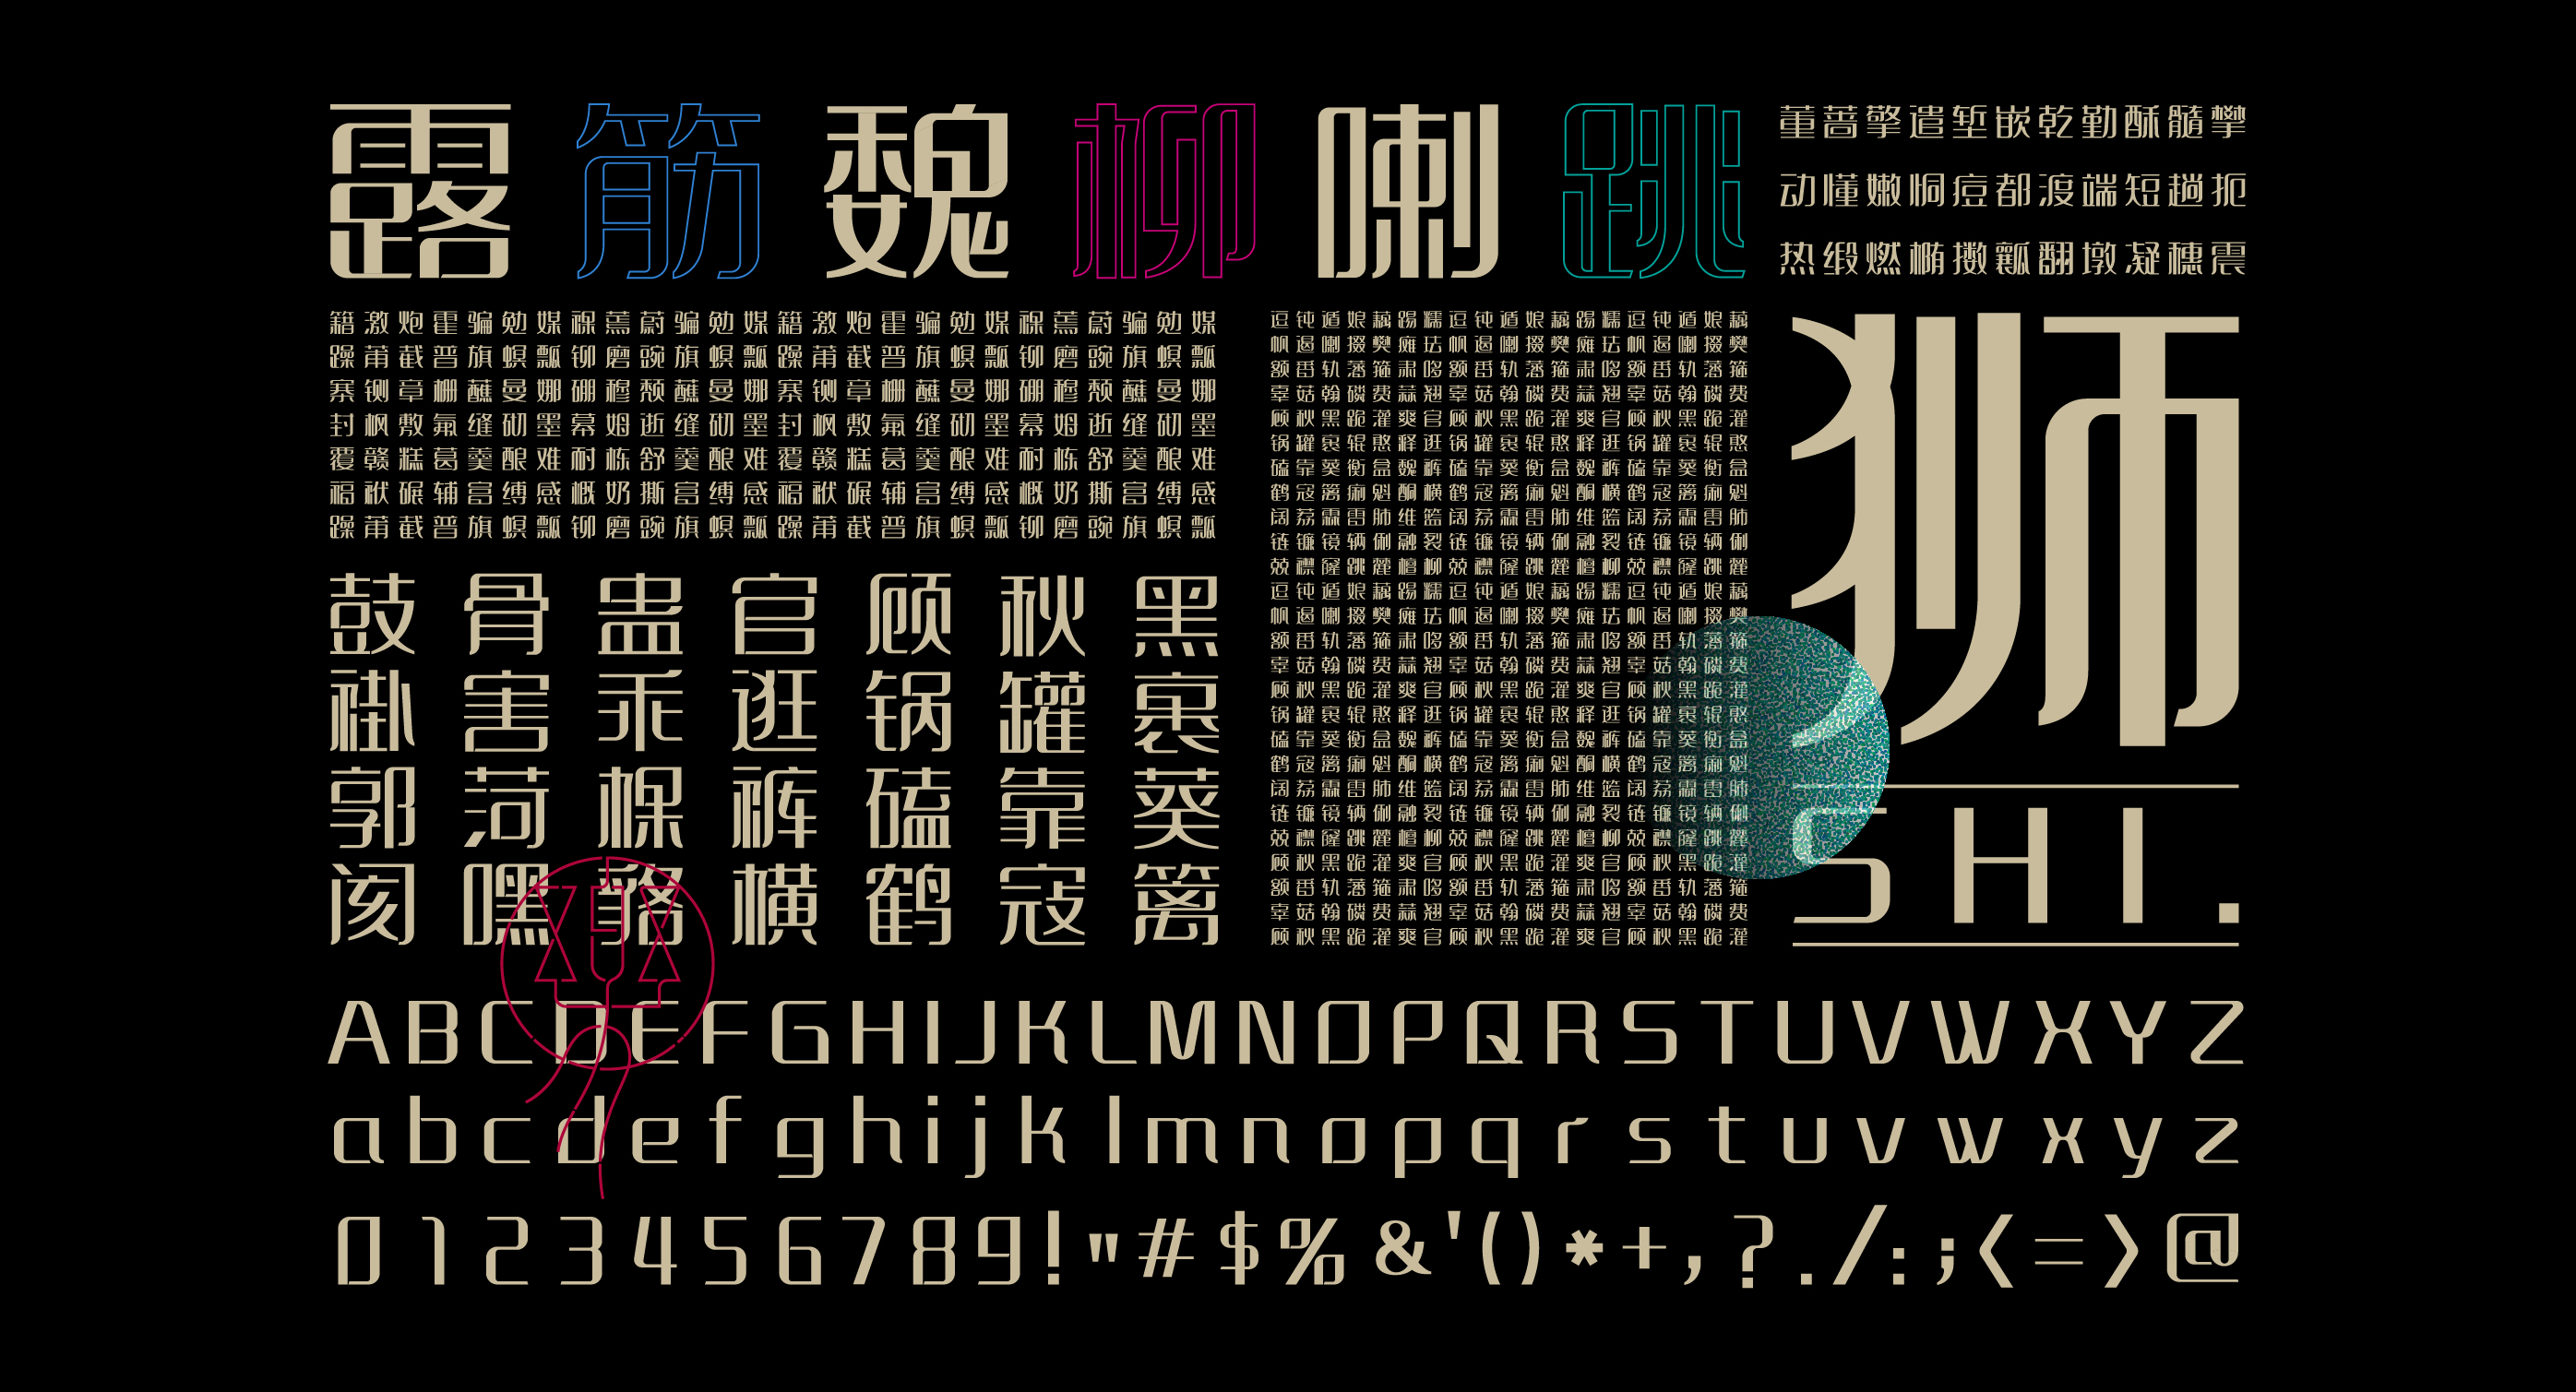 38P Collection of the latest Chinese font design schemes in 2021 #.11